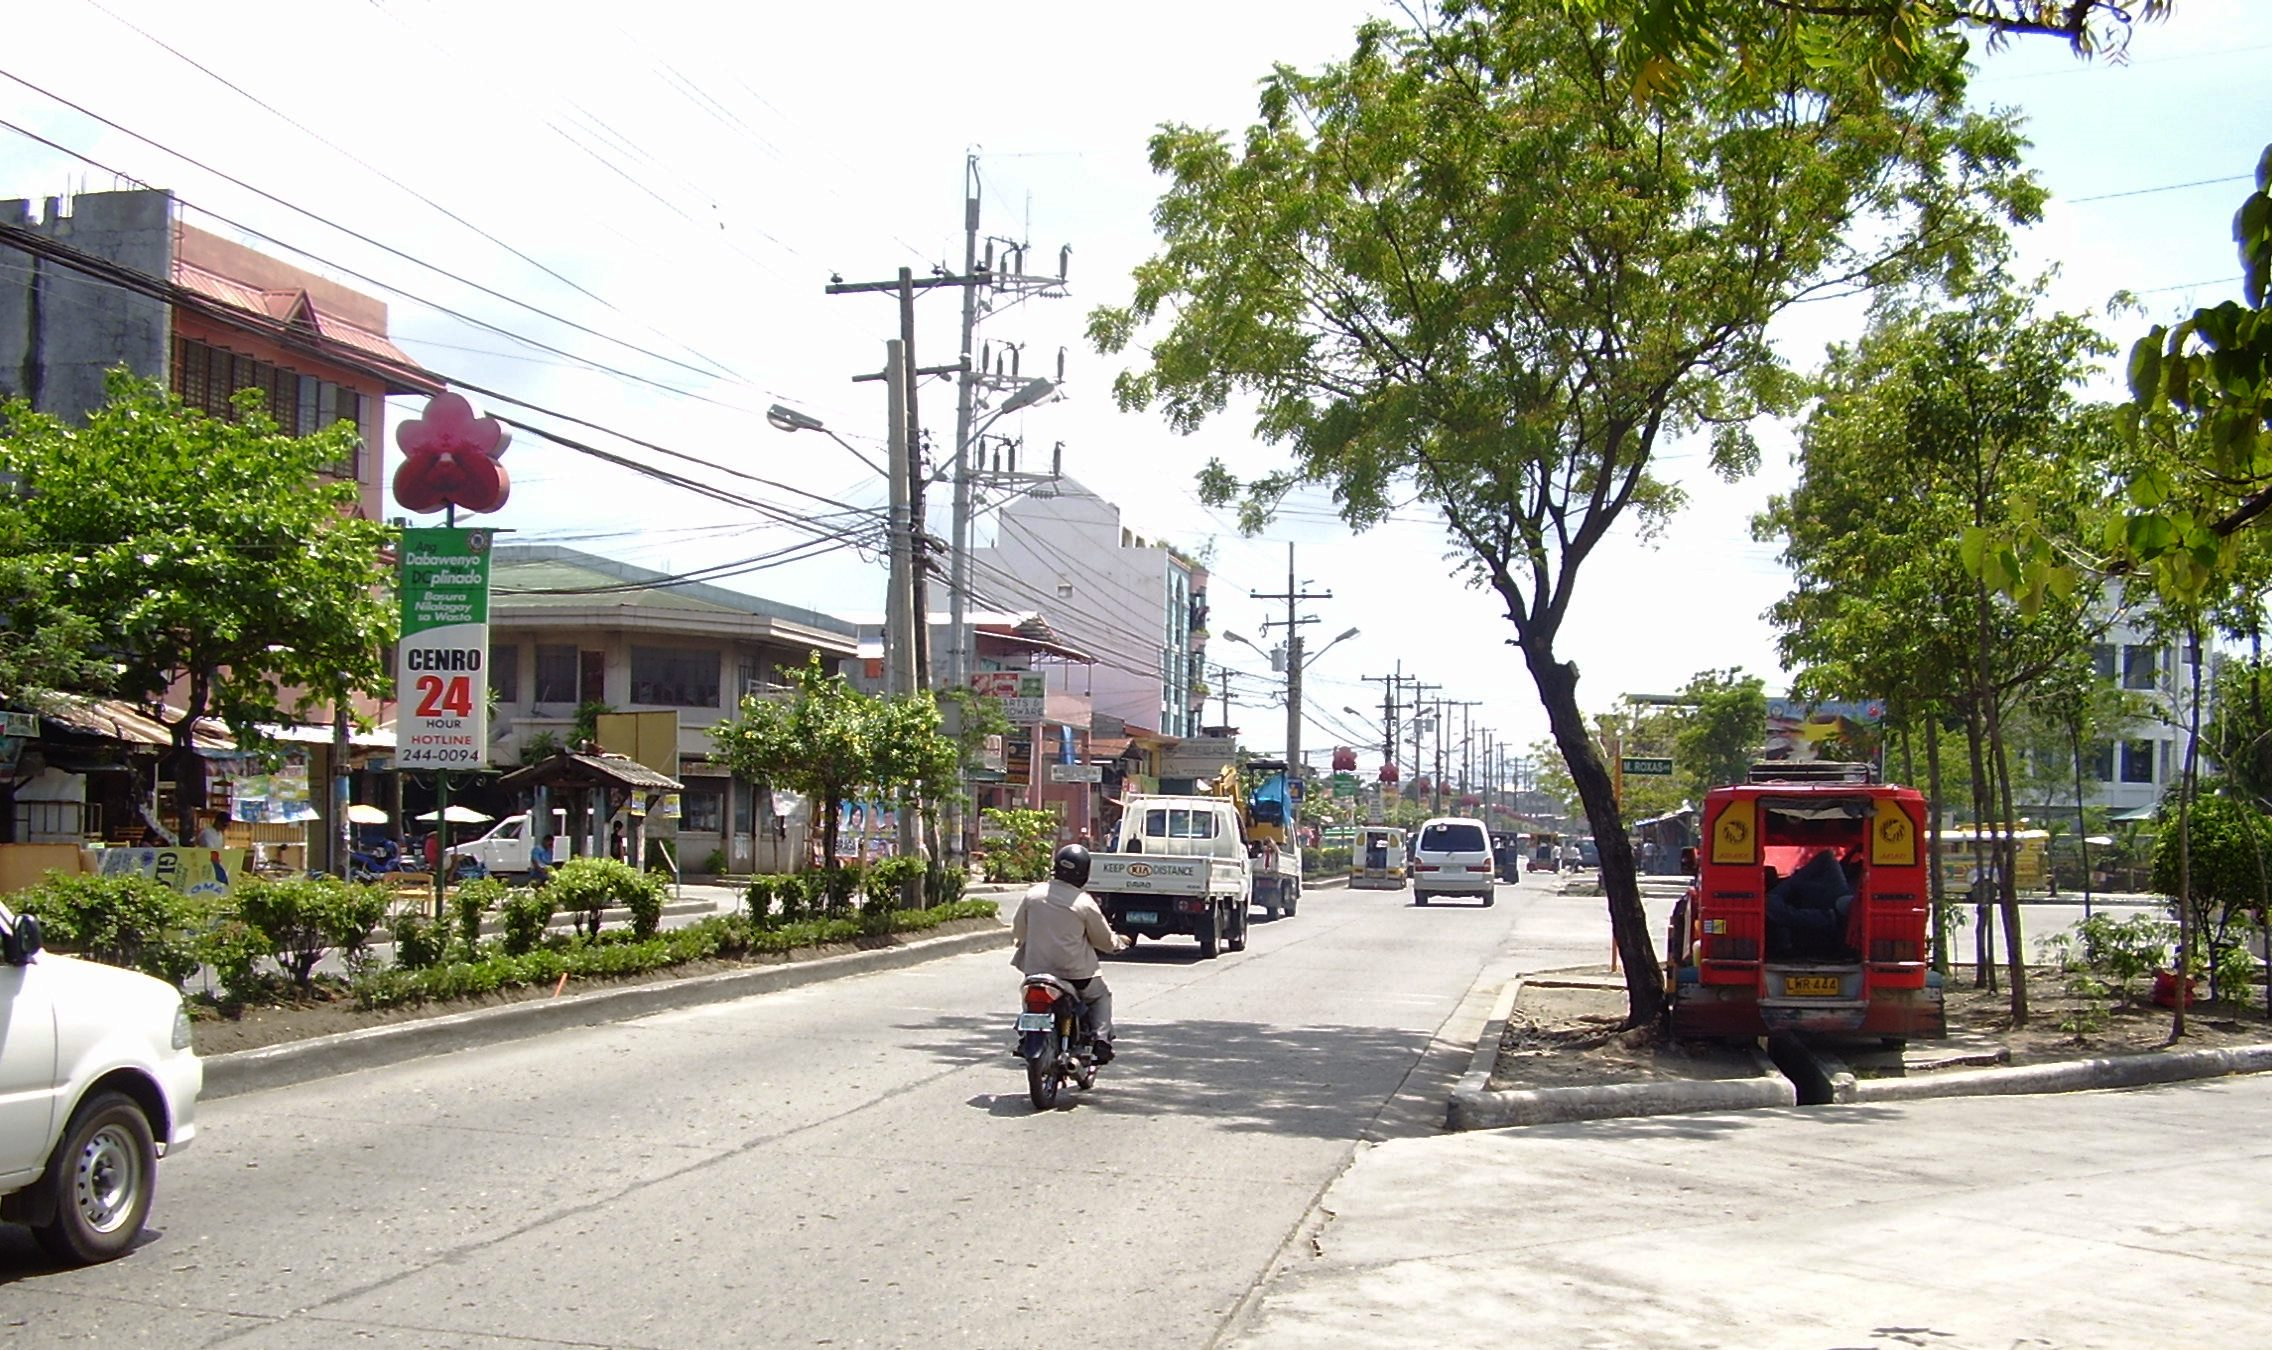 davao city Davao (tagalog pronunciation: ) refers to several closely related places in mindanao in the philippines:  city davao city, also known simply as davao, mindanao's largest highly urbanized city and the country's largest city in terms of area of jurisdiction.